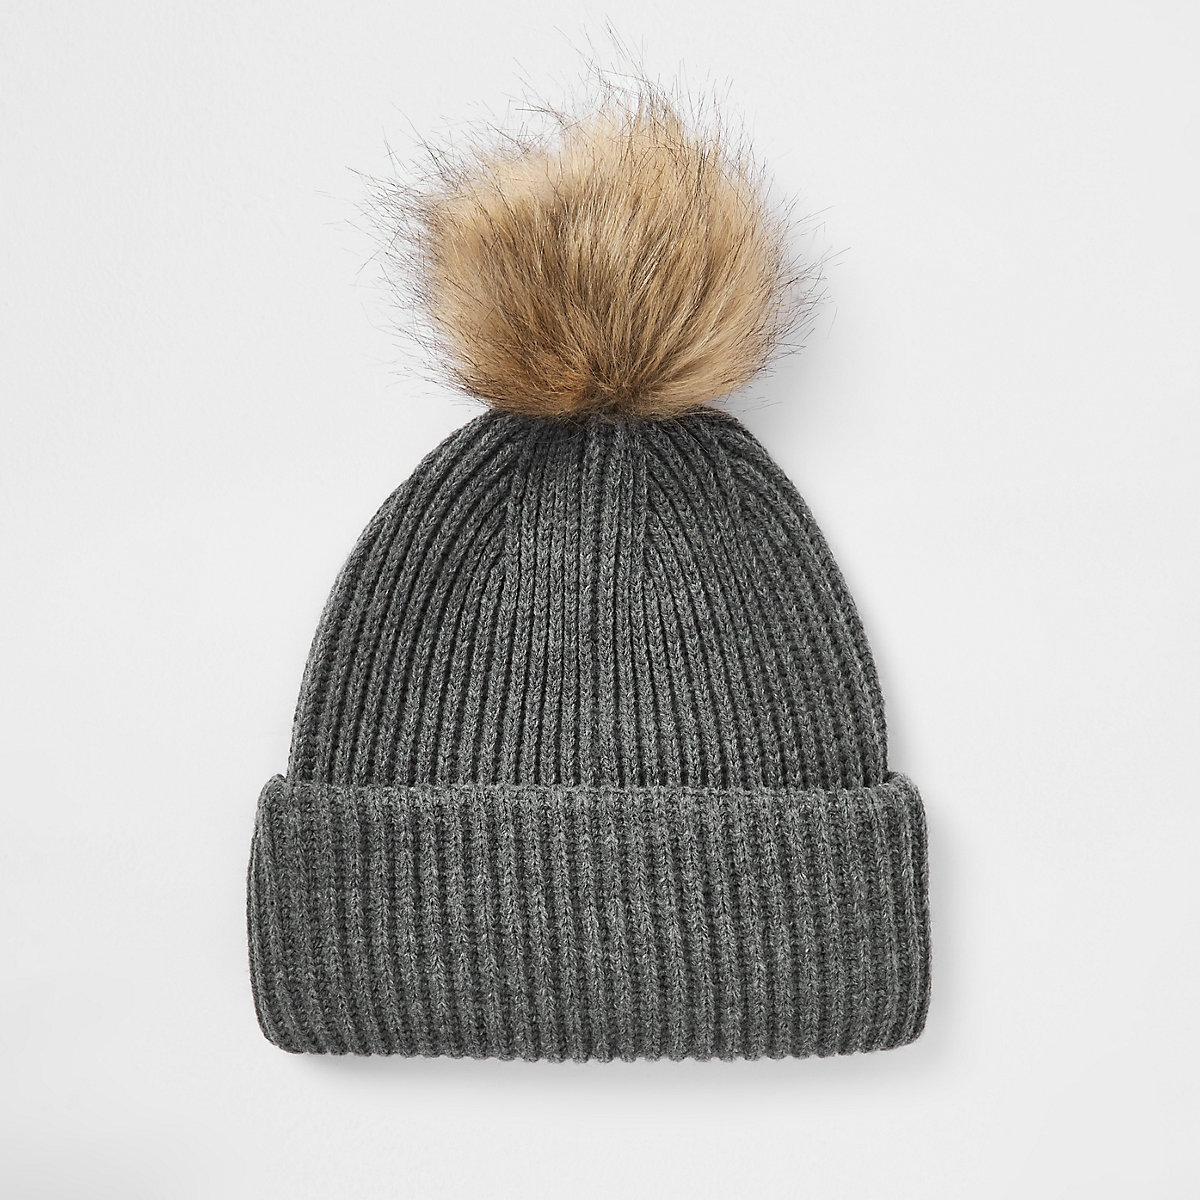 Grey faux fur pom pom beanie hat - Hats   Caps - Accessories - men 4d1b33f9bb8